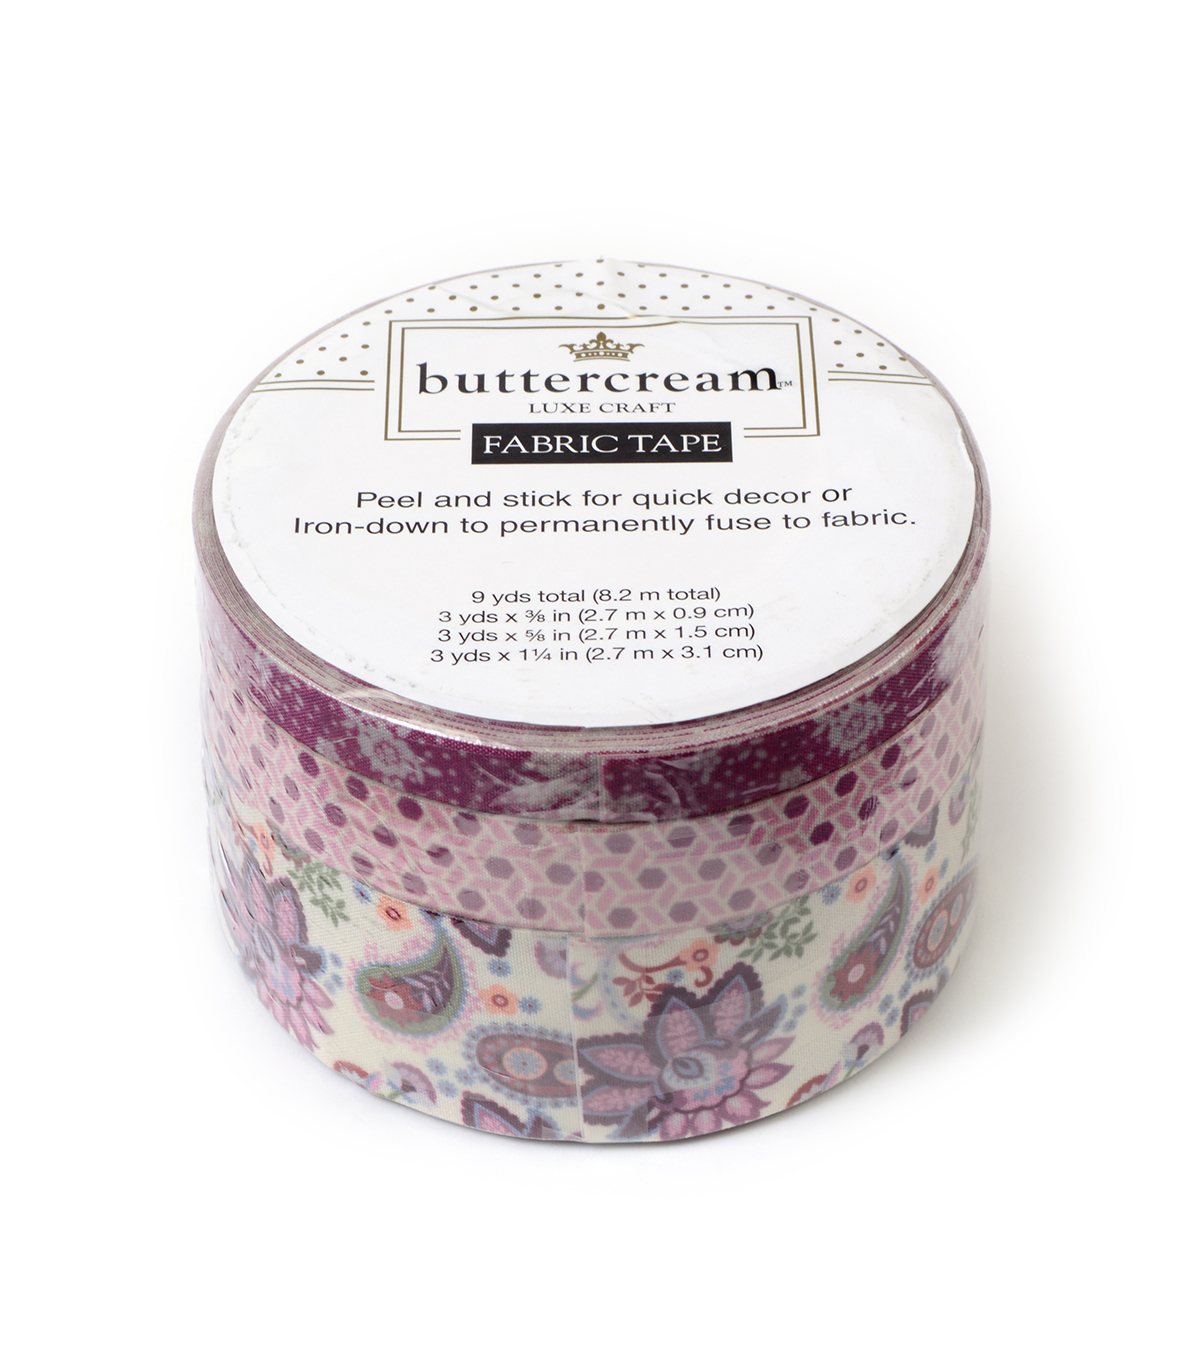 Buttercream Elizabeth Collection Fabric Tape-Paisley Blossom